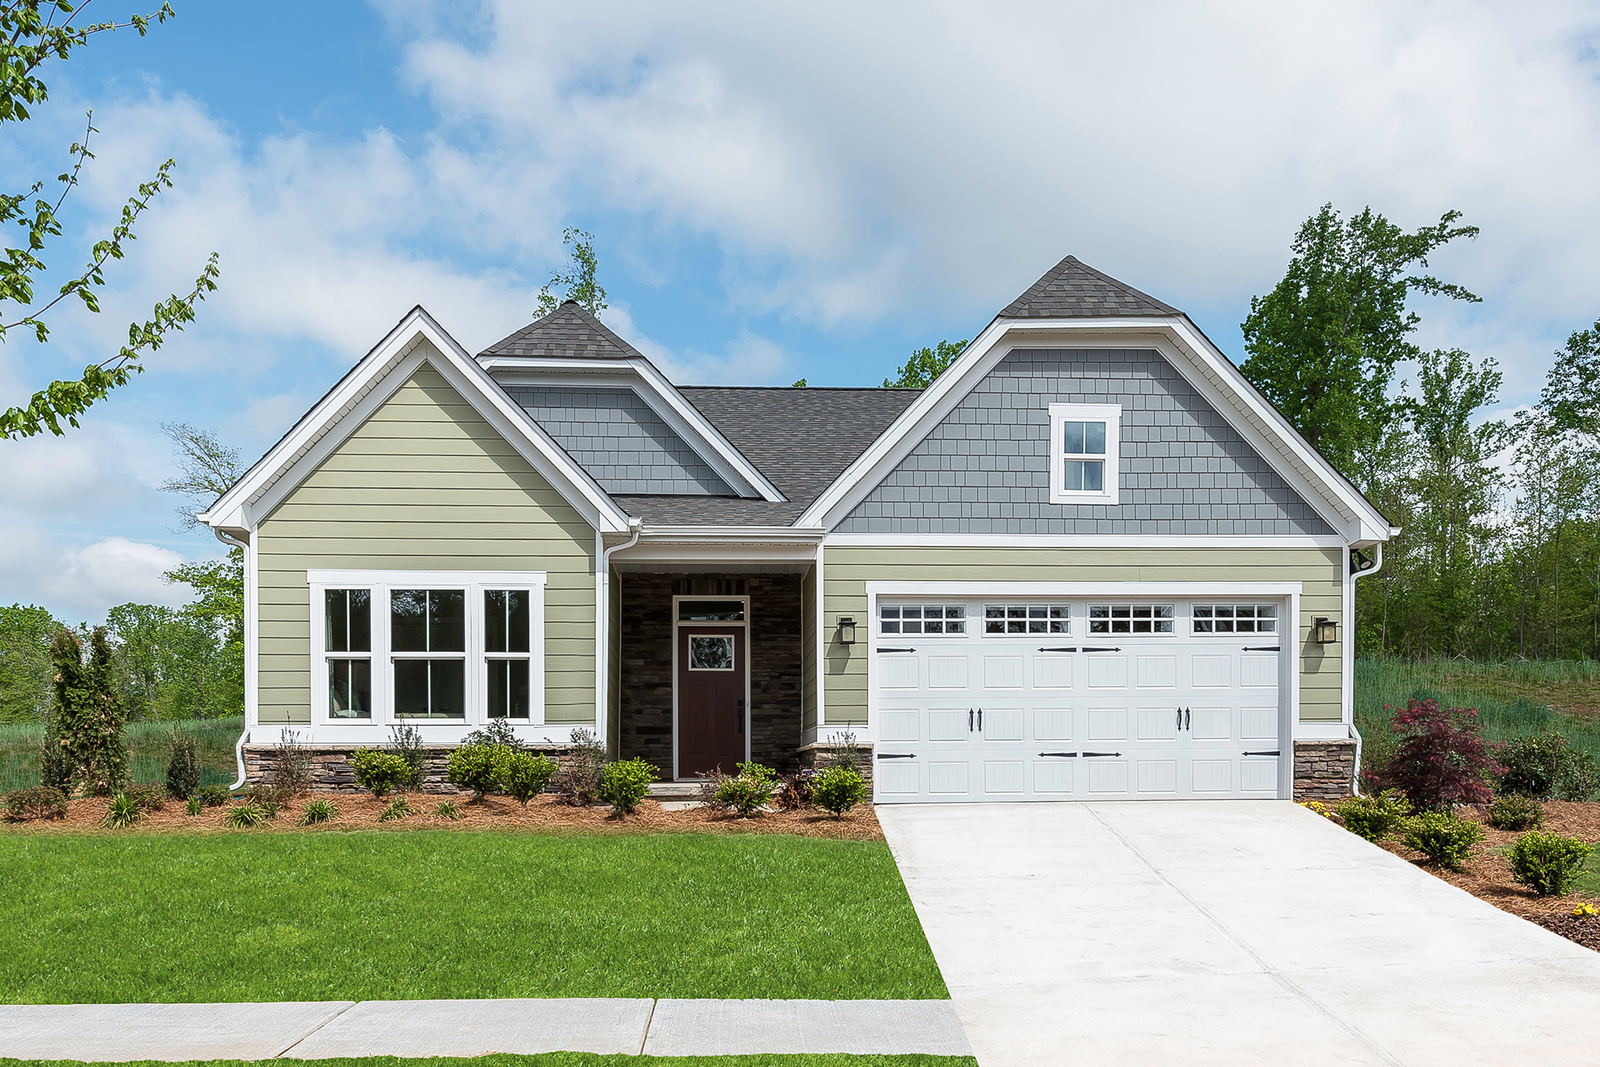 New Homes For Sale At Enclave At Holcomb Woods 55 In Harrisburg